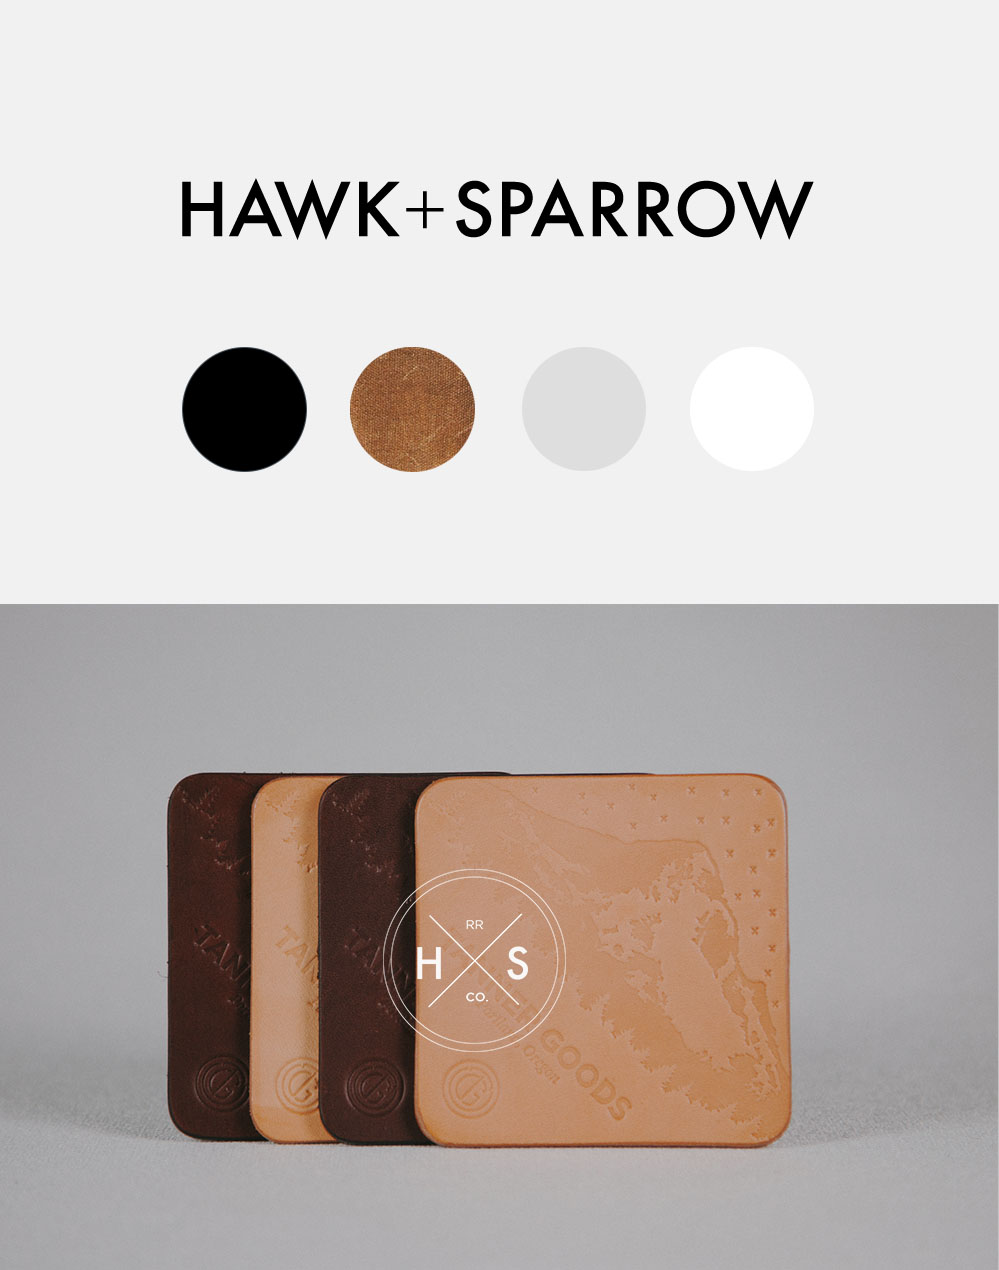 HAWK + SPARROW | DESIGN BY JOANN LUI